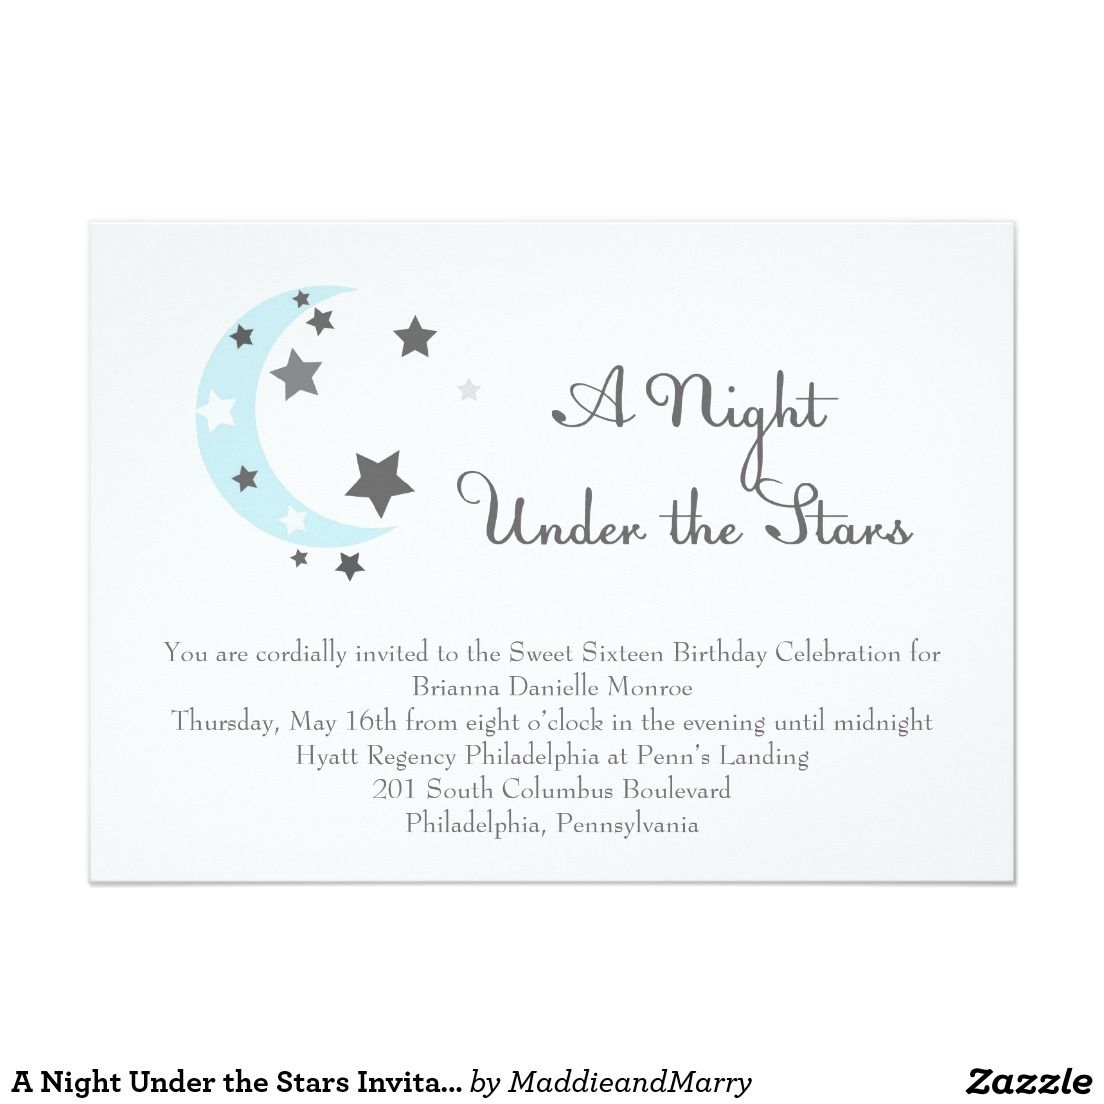 A night under the stars invitation 5 x 7 invitation card a night under the stars invitation 5 x 7 invitation card stopboris Image collections